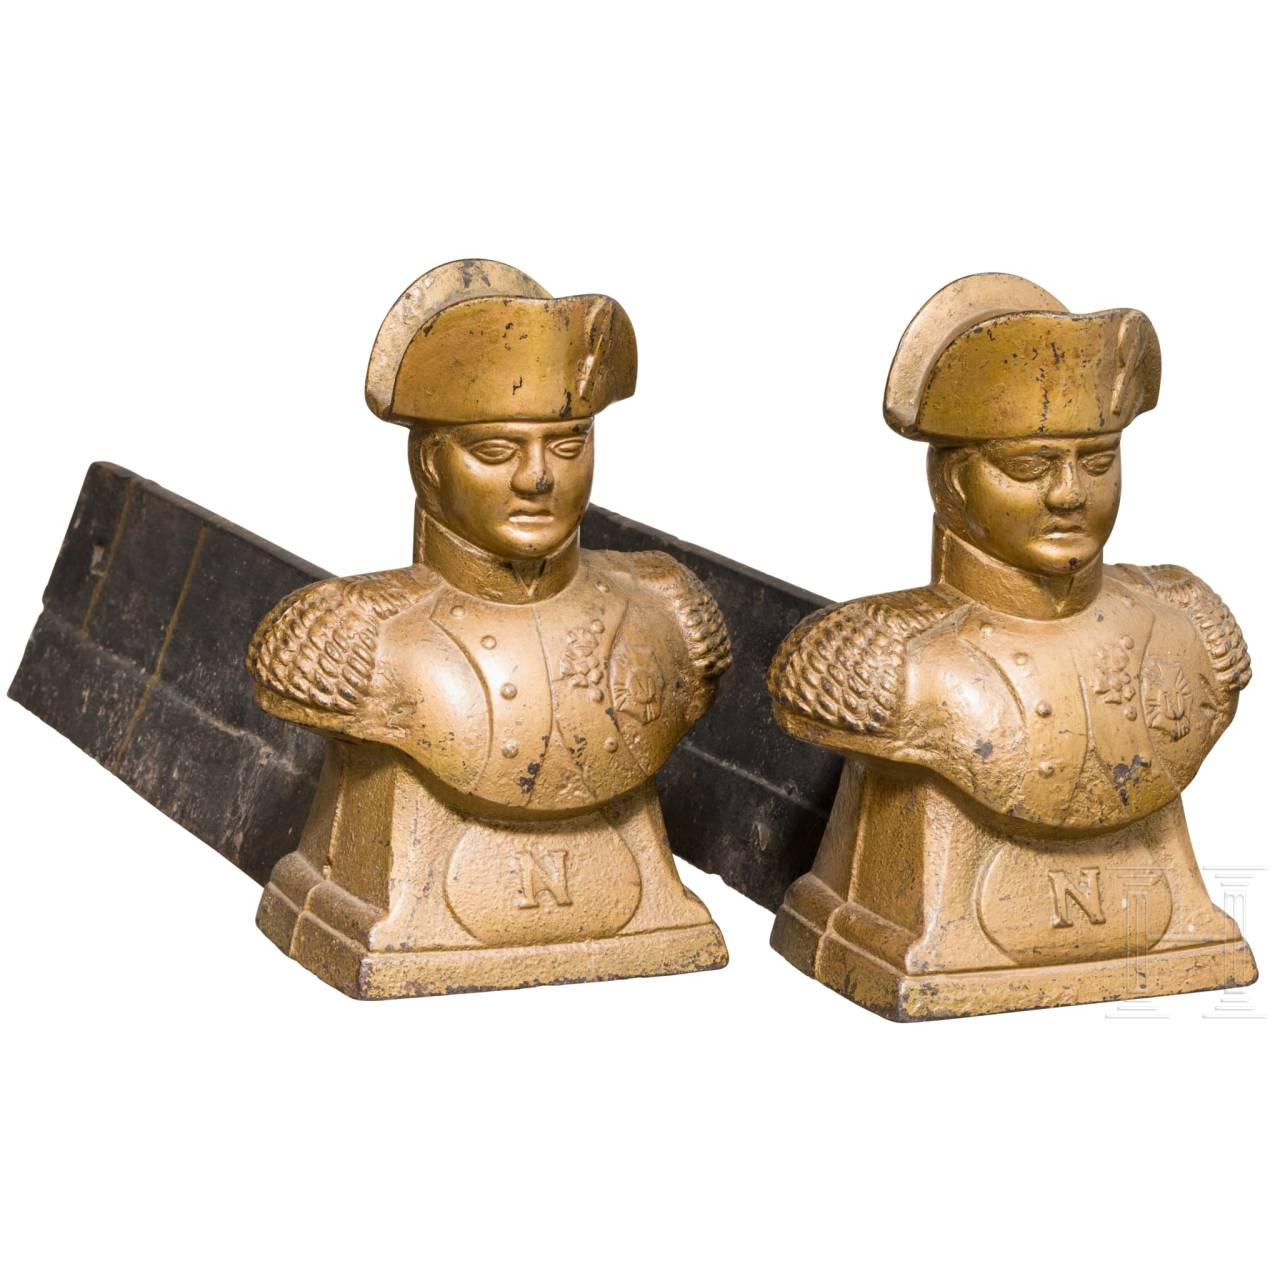 Two andirons with Napoleon motif, 19th century